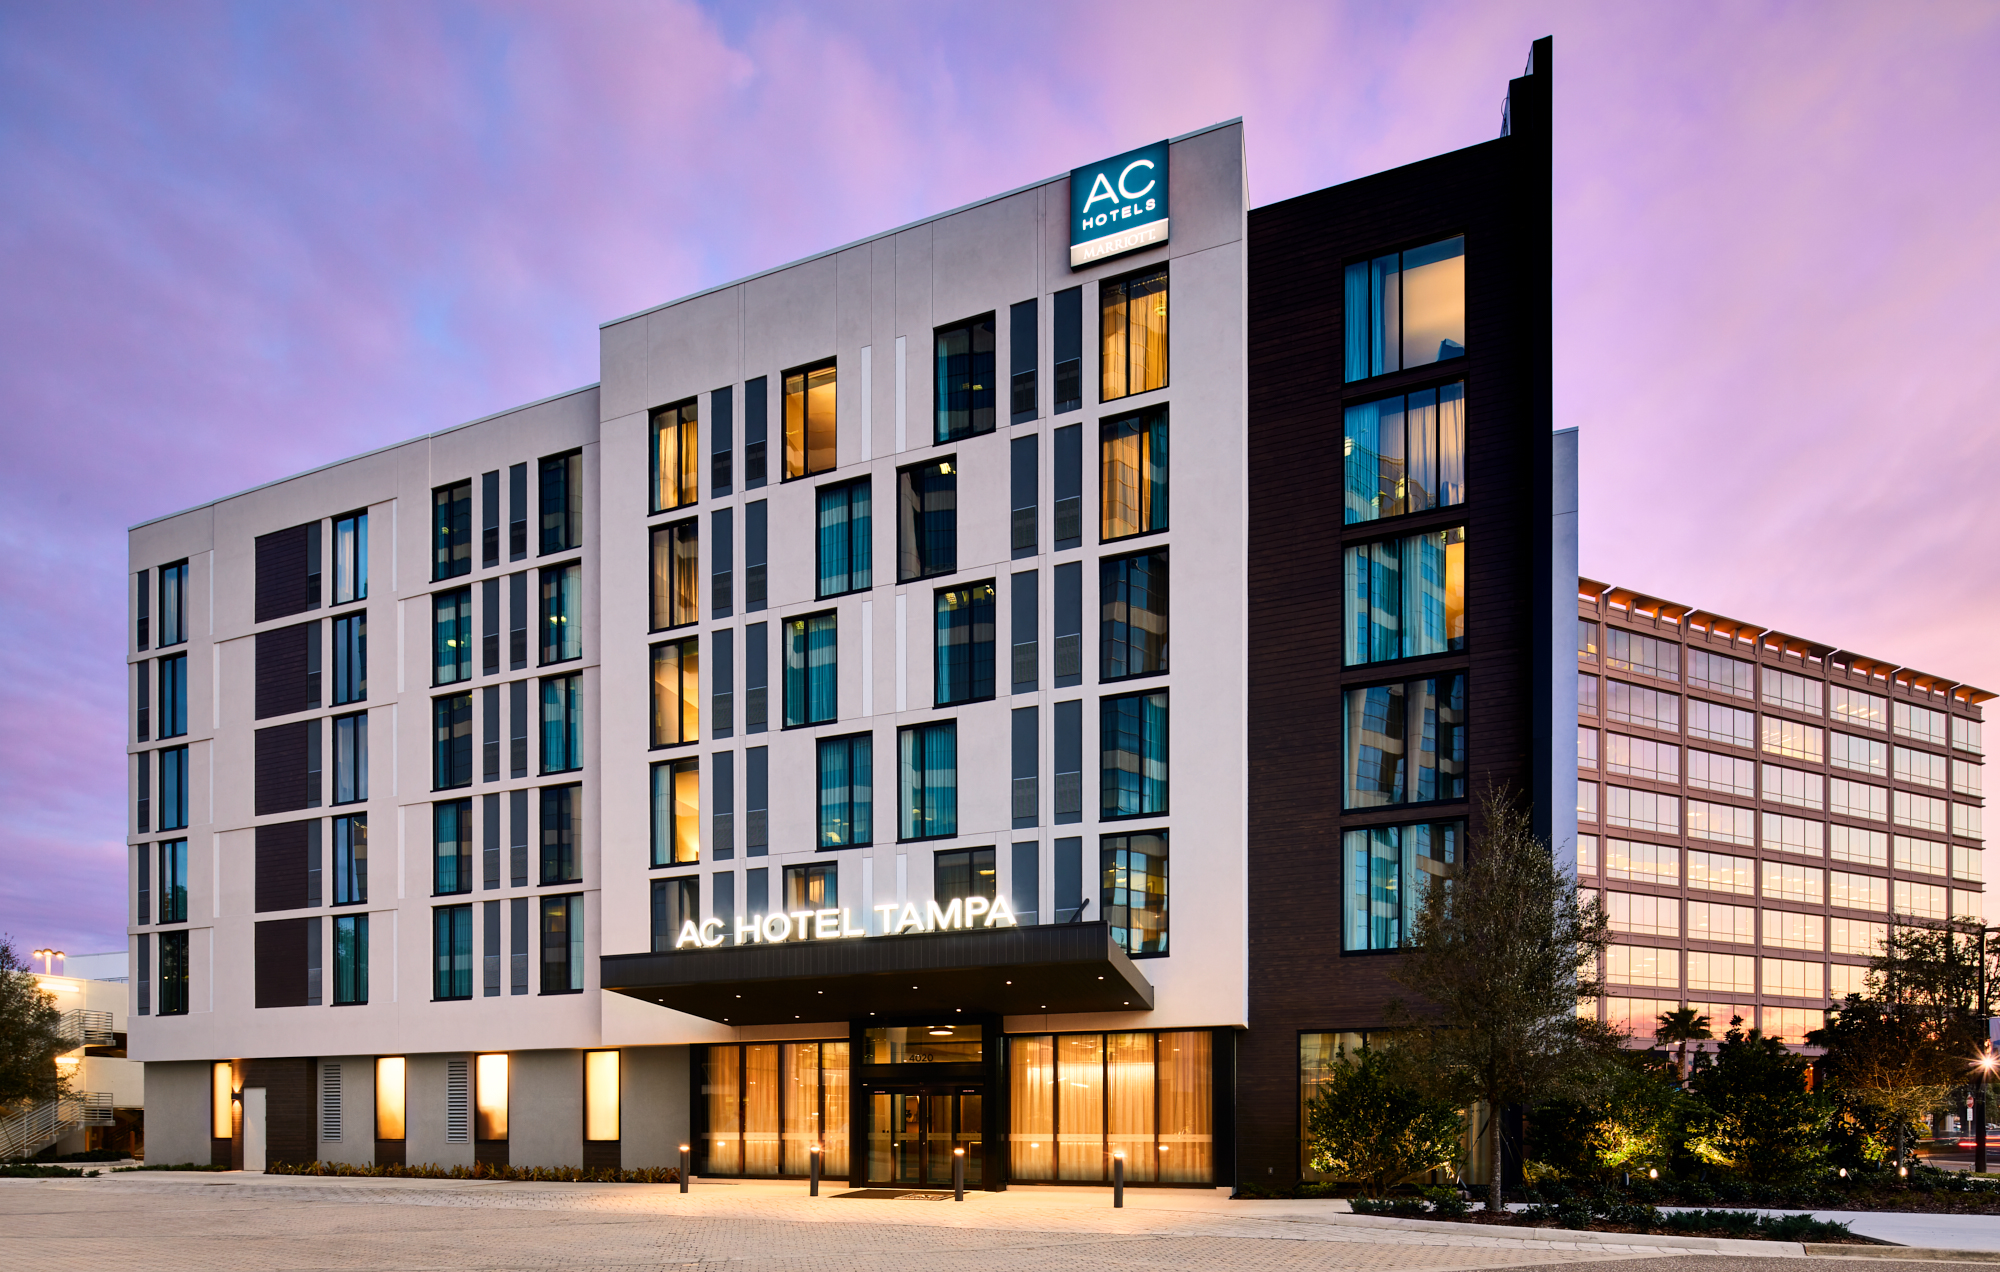 Hotel Exterior: AC Hotels By Marriott Tampa/Airport